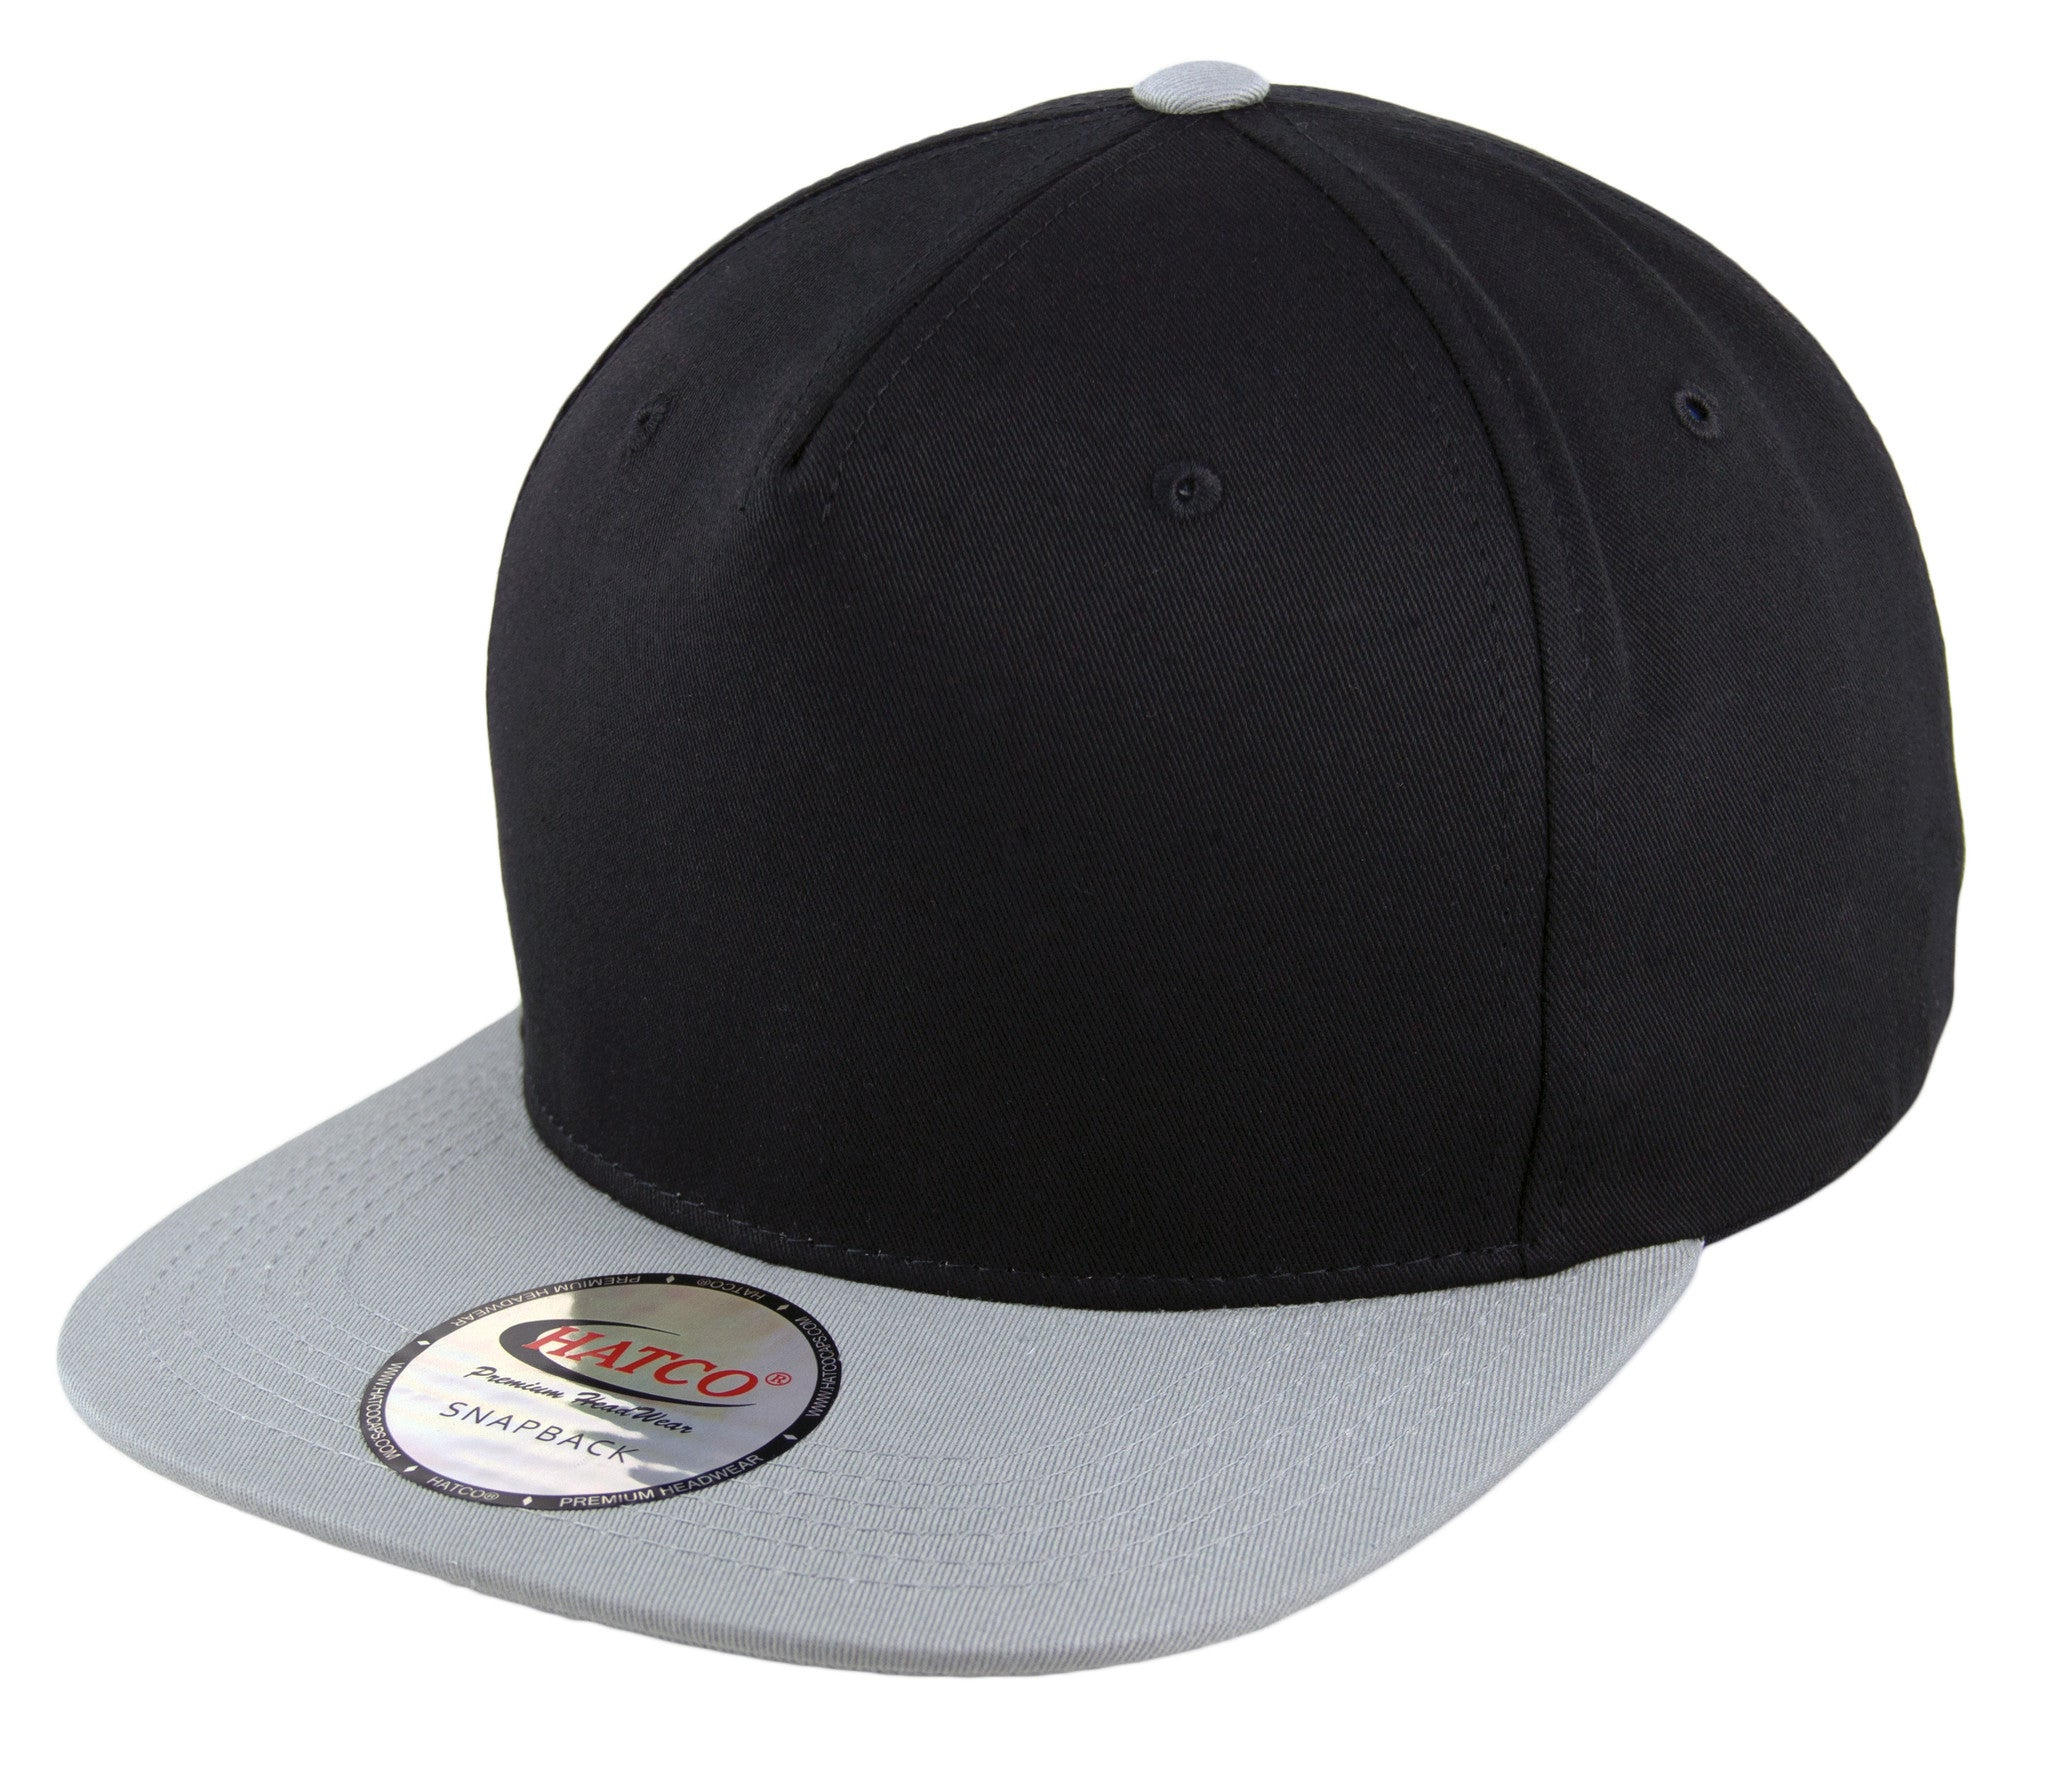 800a3726fda Blank 5 Panel Snapback Cap - Black Light Grey - HATCOcaps.com